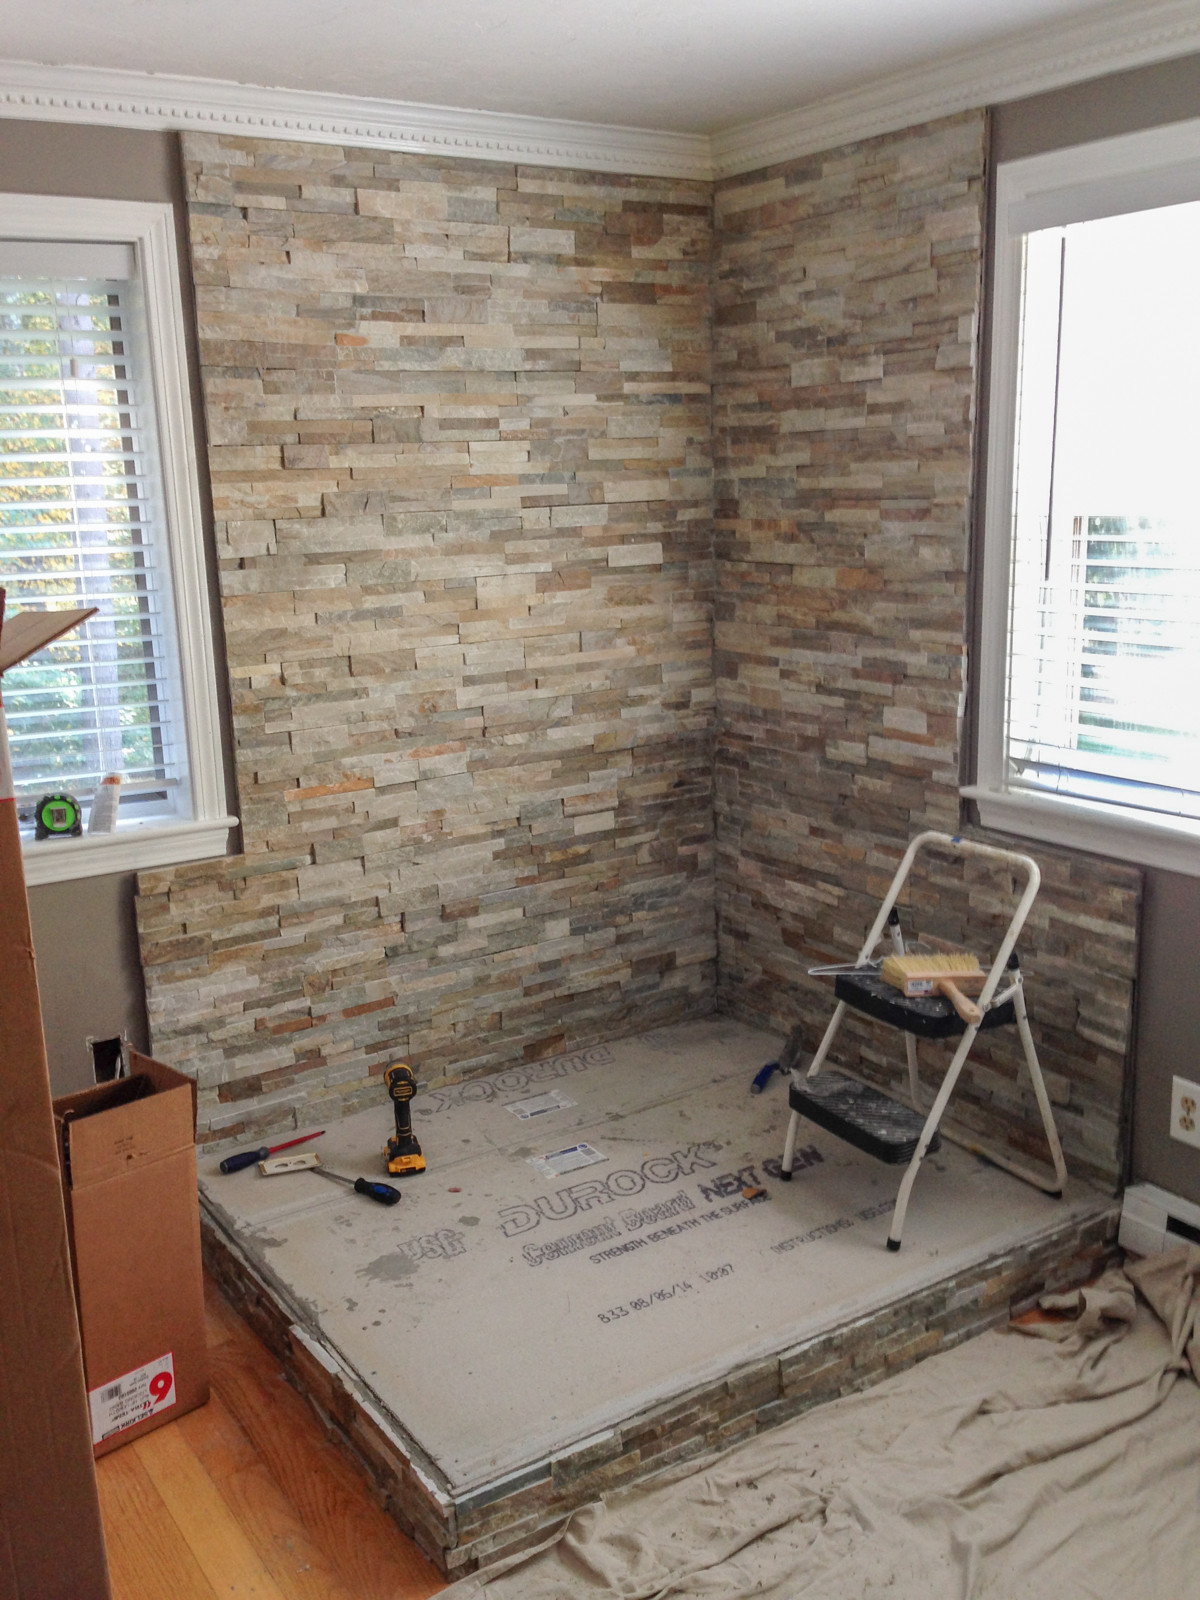 wall complete w stone tile - How To Install A Wood Stove In Your Manufactured Home